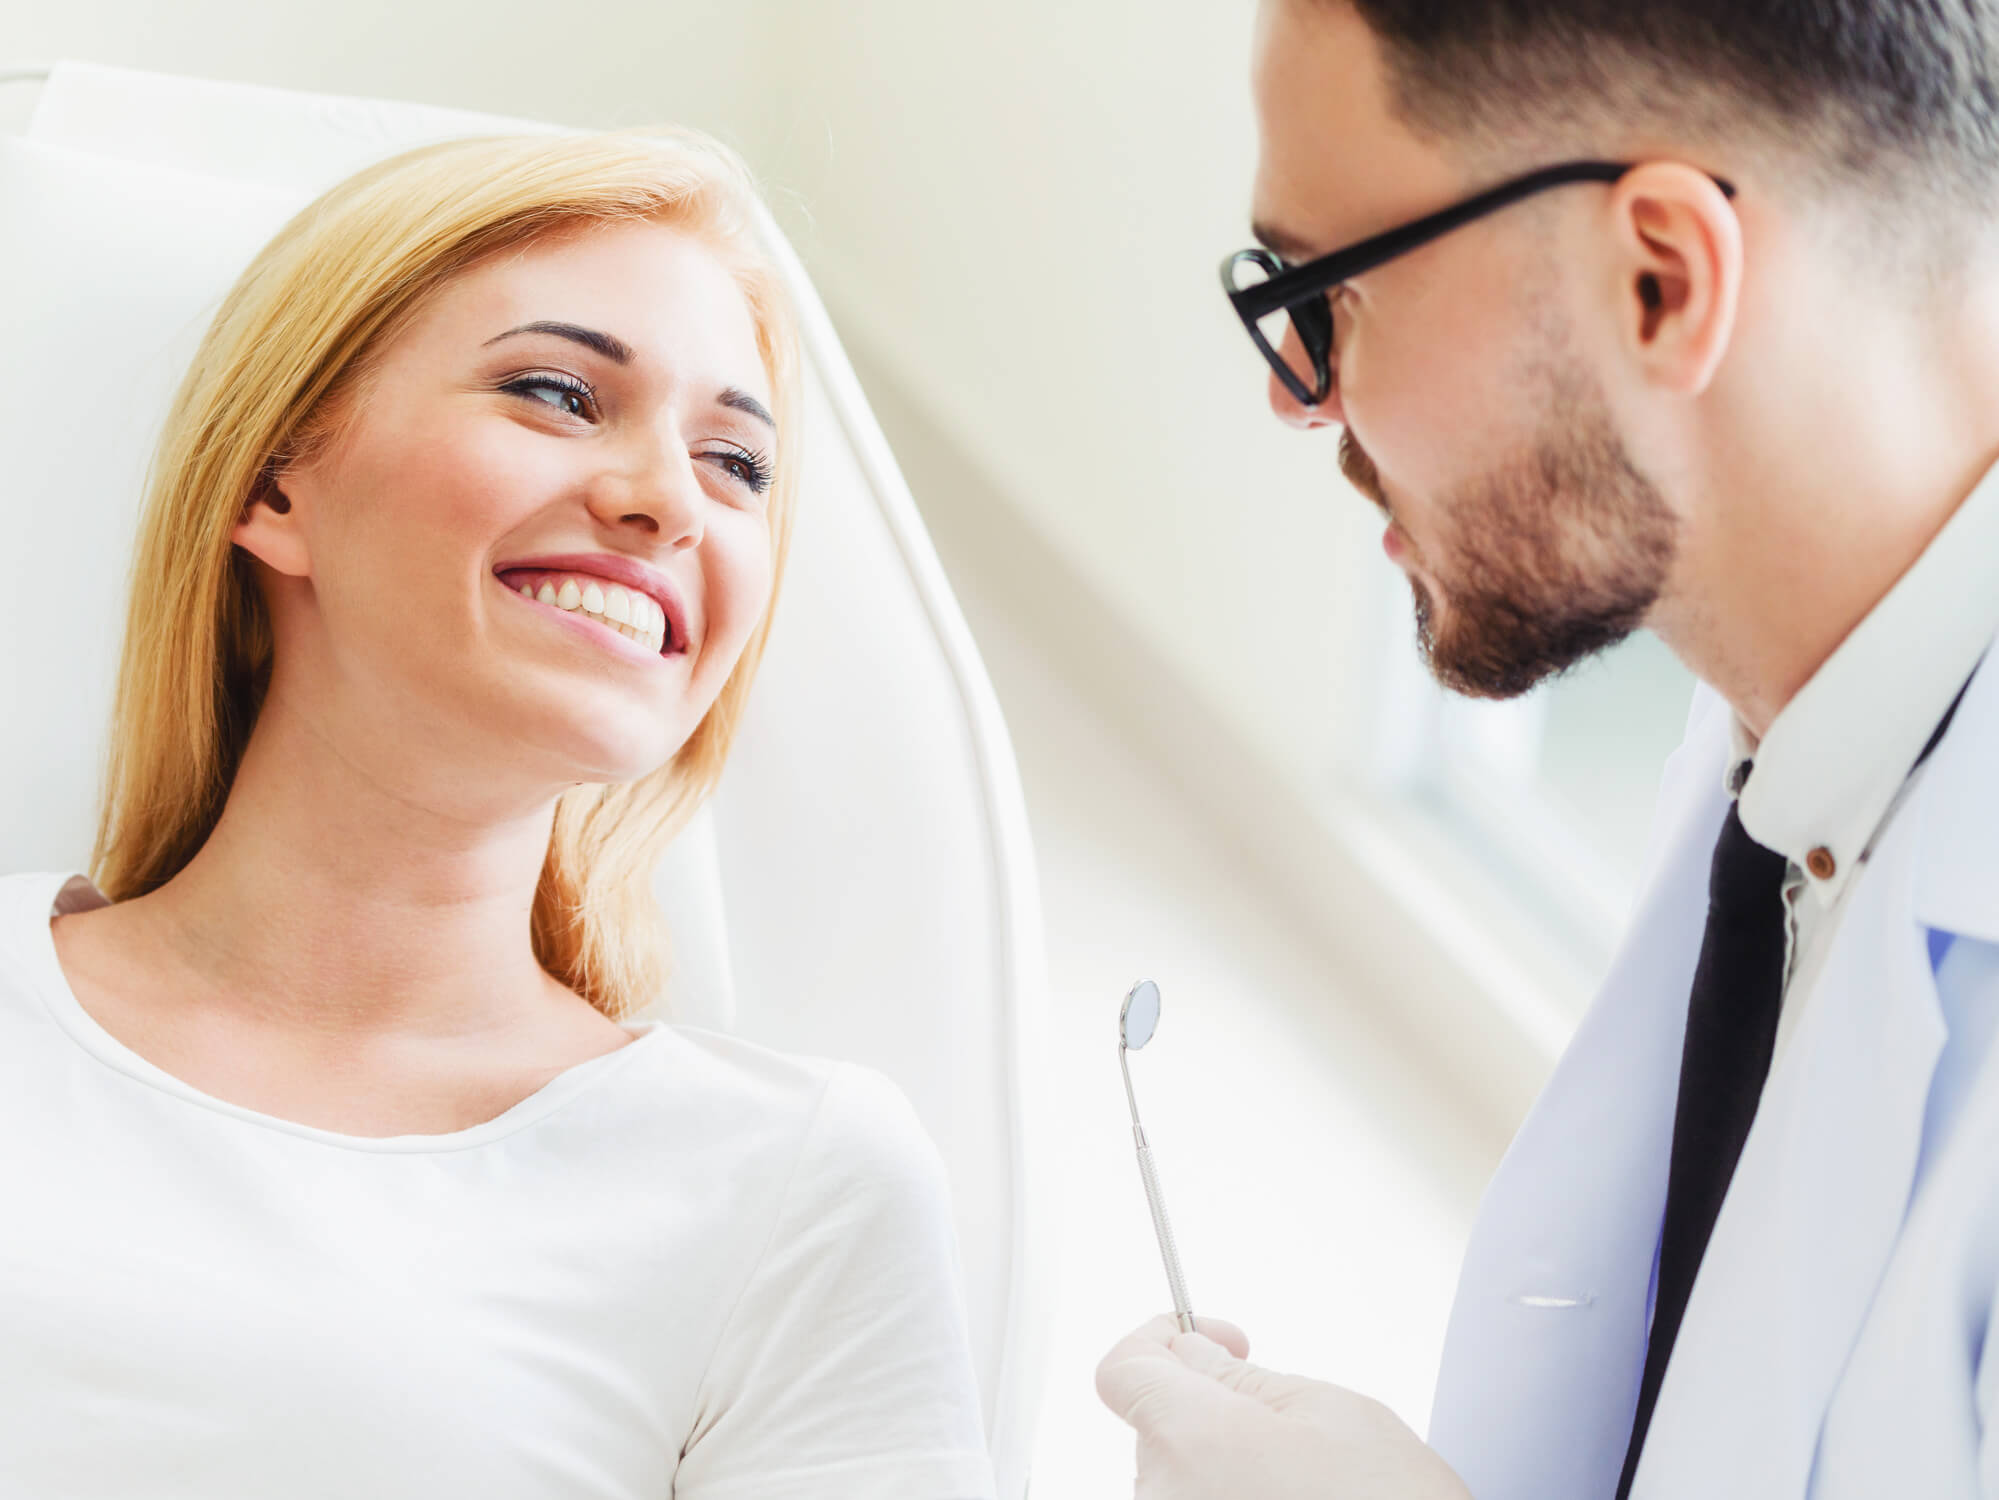 where can i see a sedation dentist in mechanicsville?